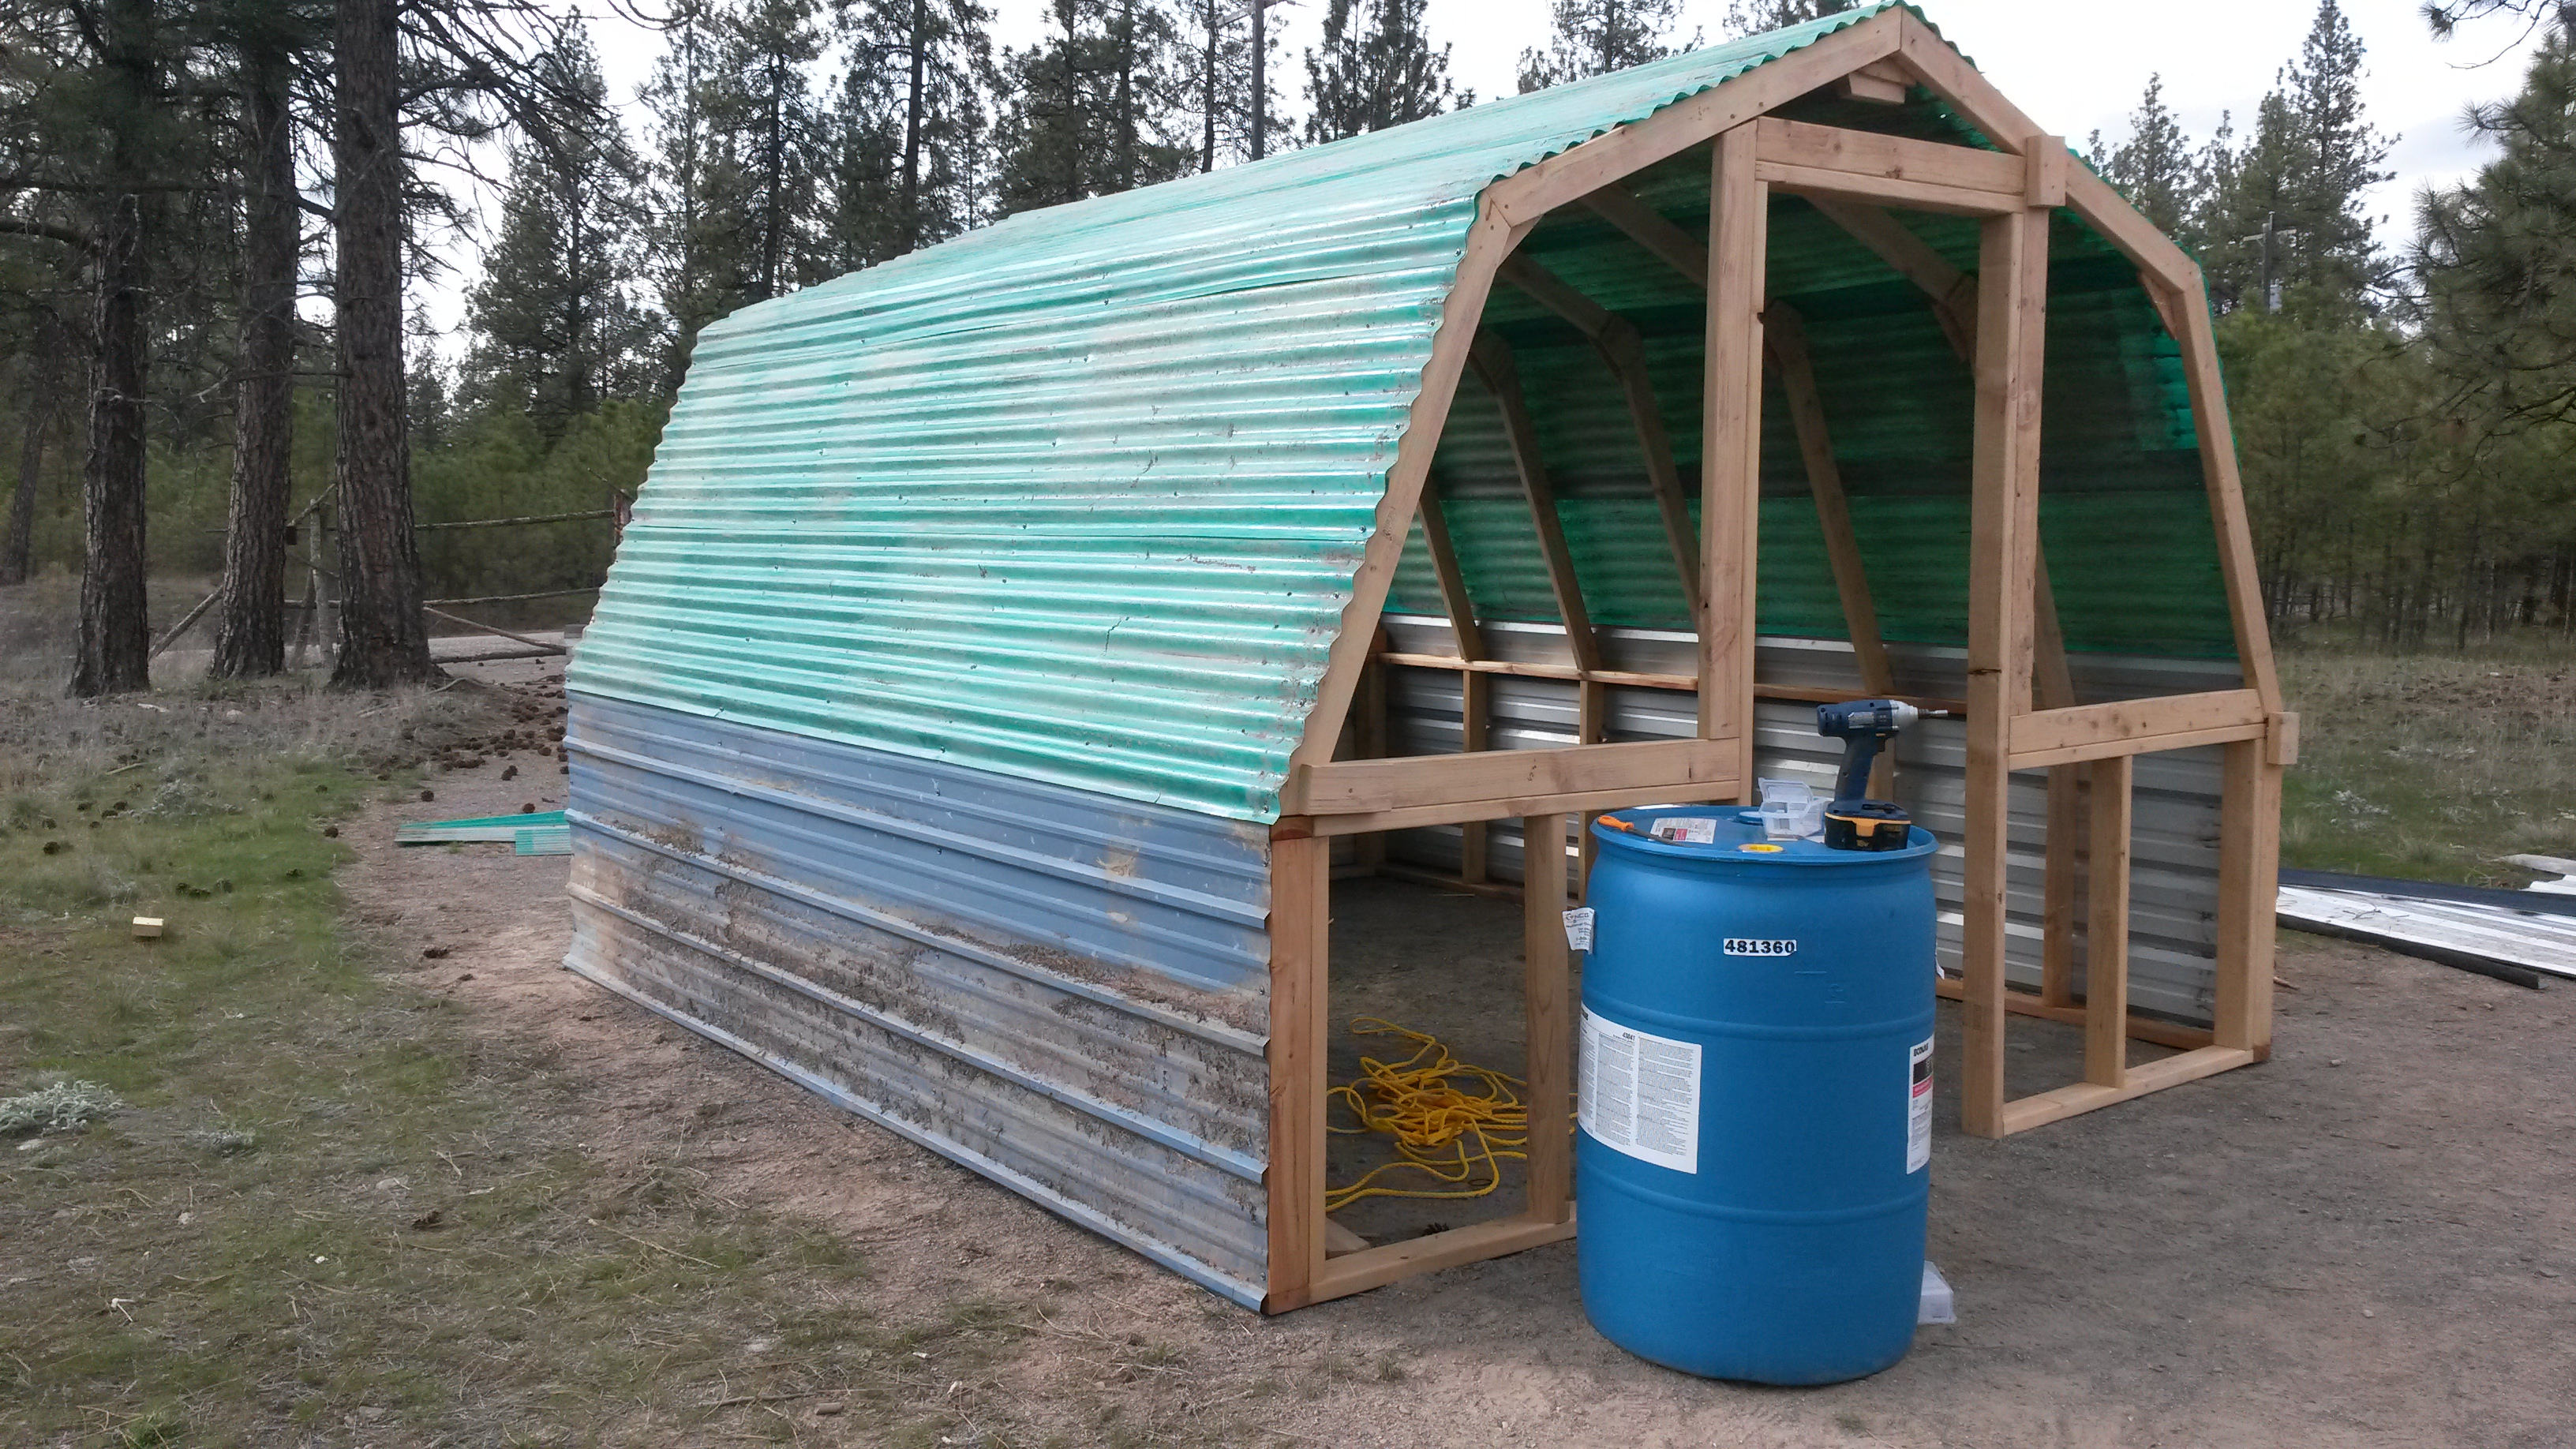 ideas timber nz tasmania timbers diy at central departments tipperary mammoth roof bq diplomat sheds cladding cheap custom a floor scotland remarkable summerhouse shed loglap door sydney buy melbourne tg kit for farm and